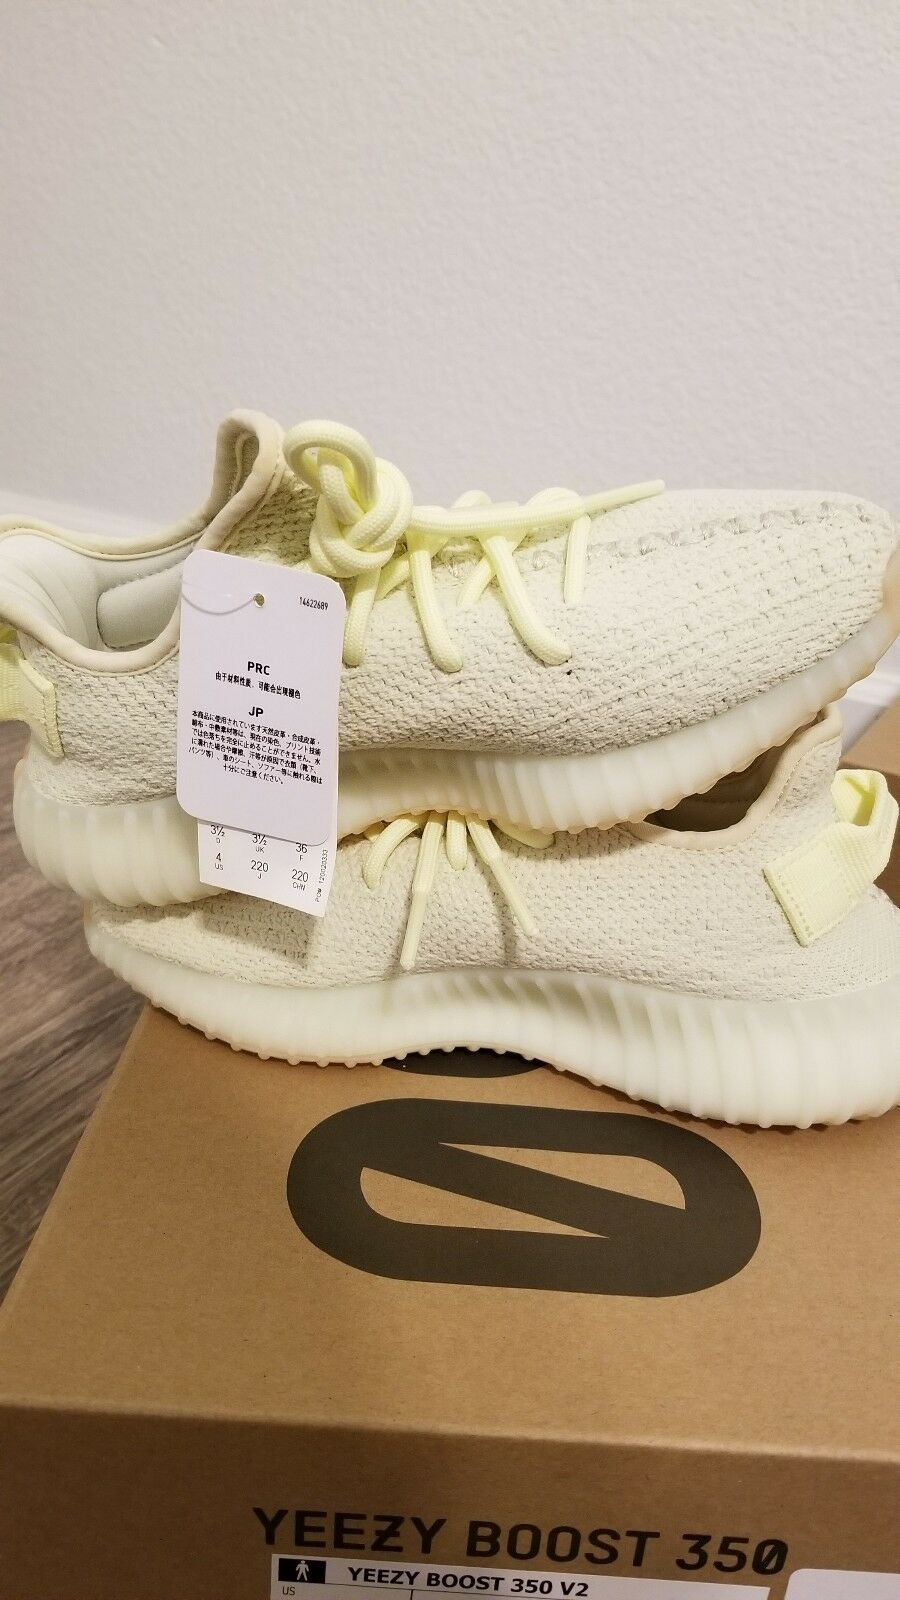 Size 4 Uomo Adidas Yeezy Boost 350 V2 Yellow Butter F36980 KANYE WEST